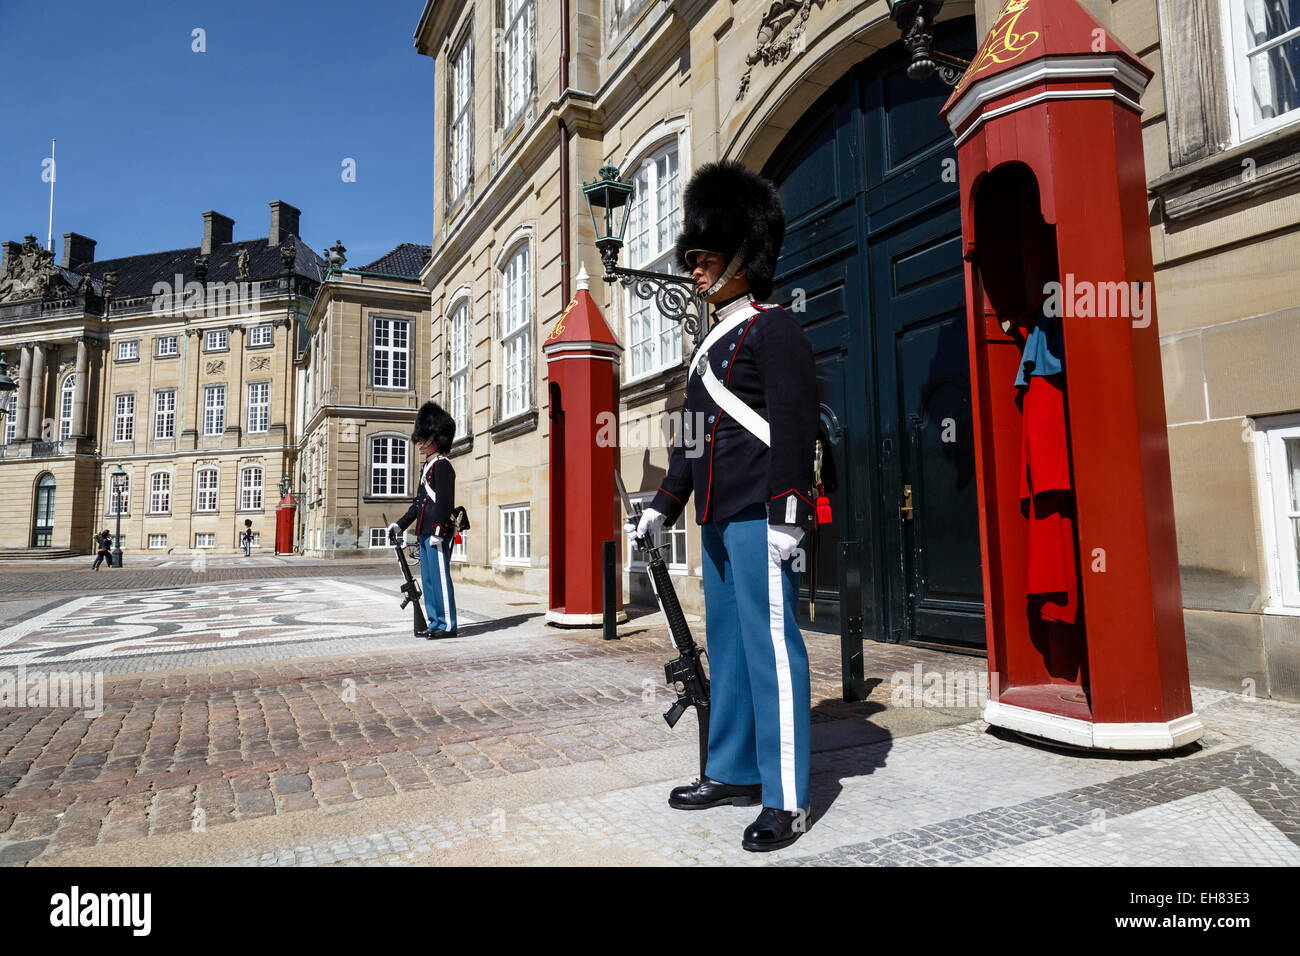 Des gardes au Palais Royal d'Amalienborg, Copenhague, Danemark, Scandinavie, Europe Photo Stock